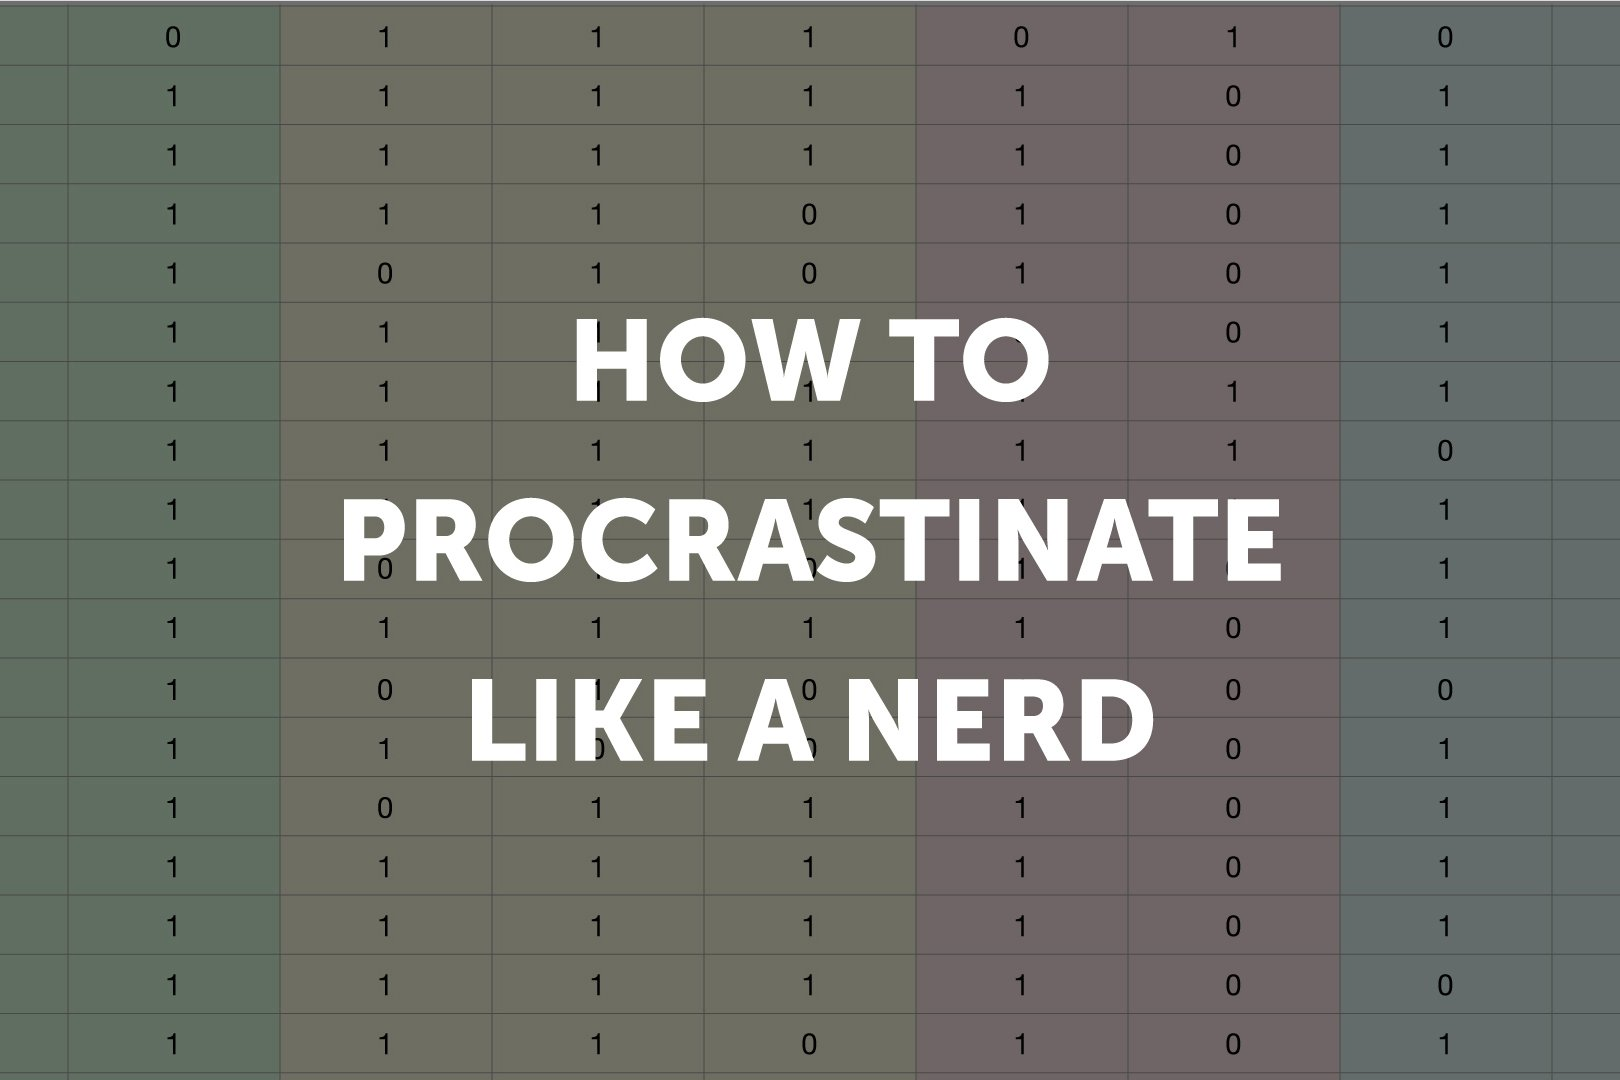 How to Procrastinate like a Nerd